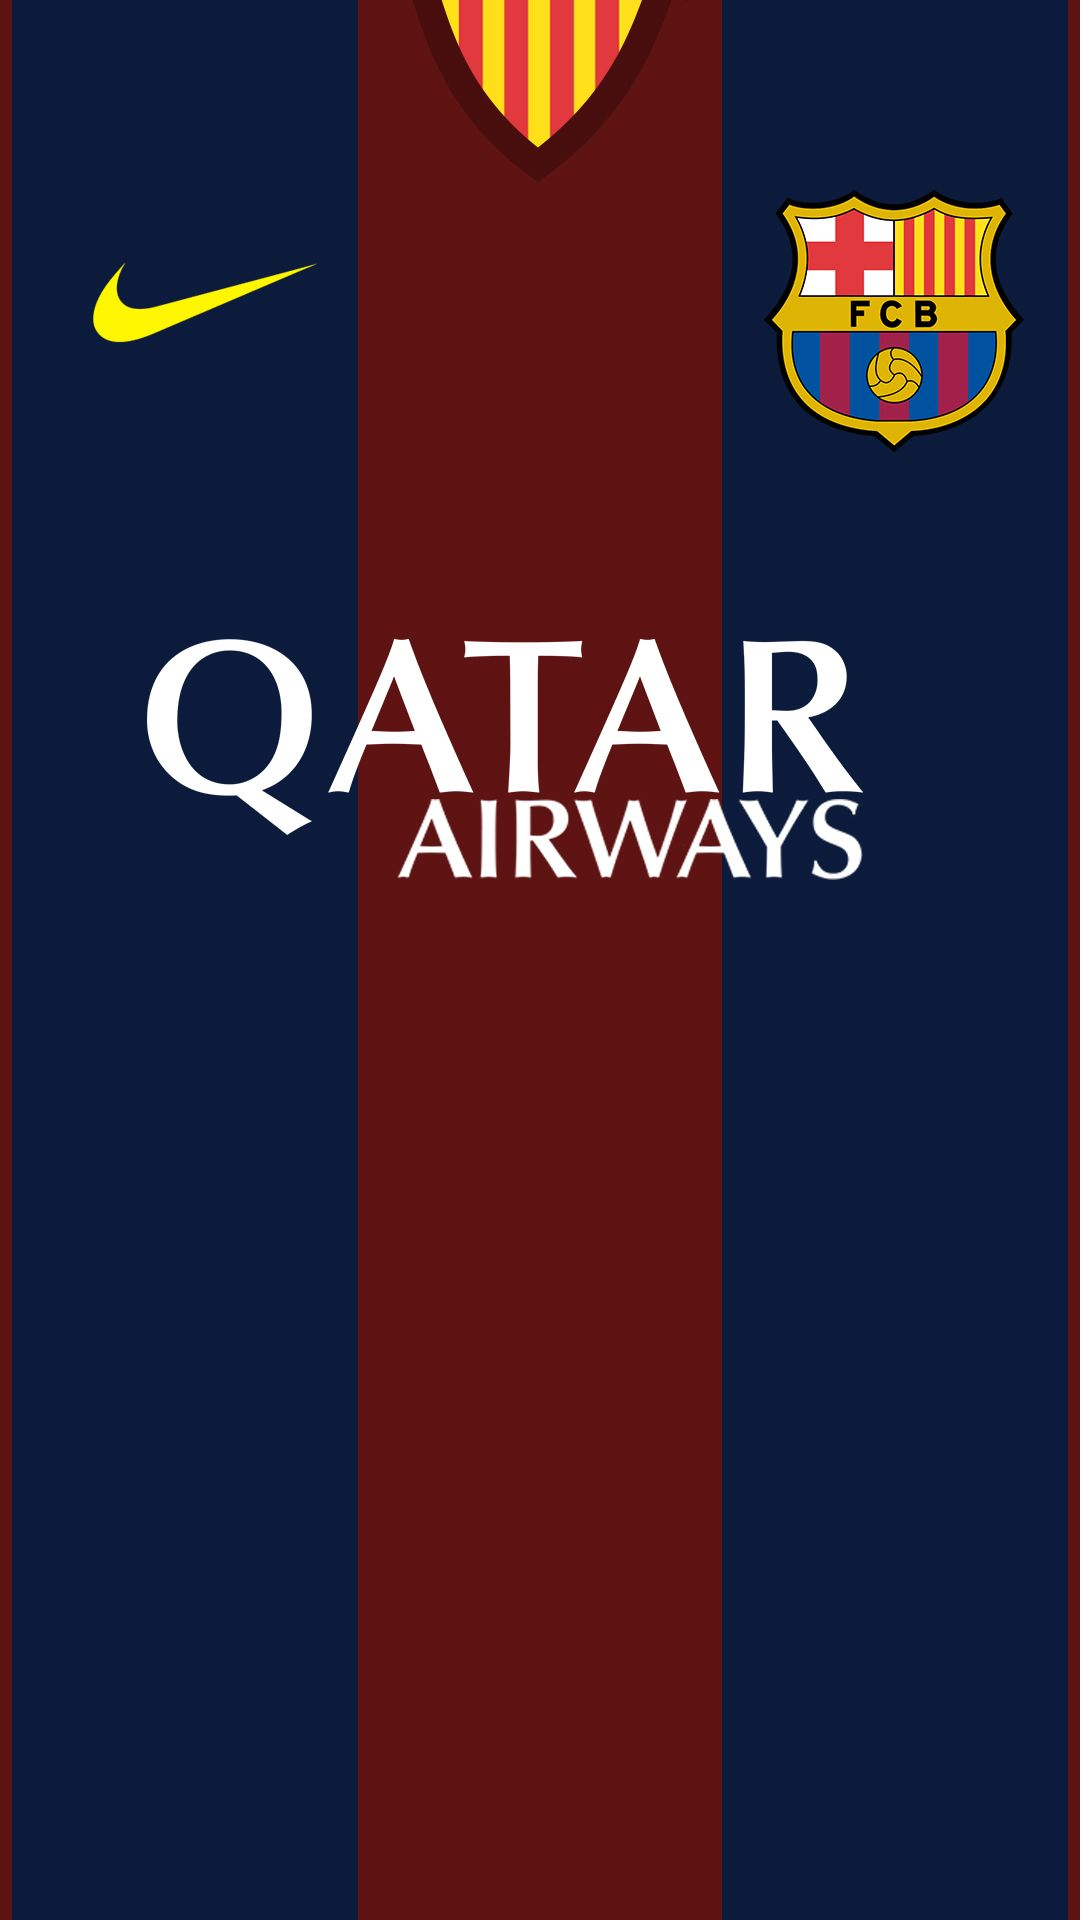 FC Barcelona wallpapers.